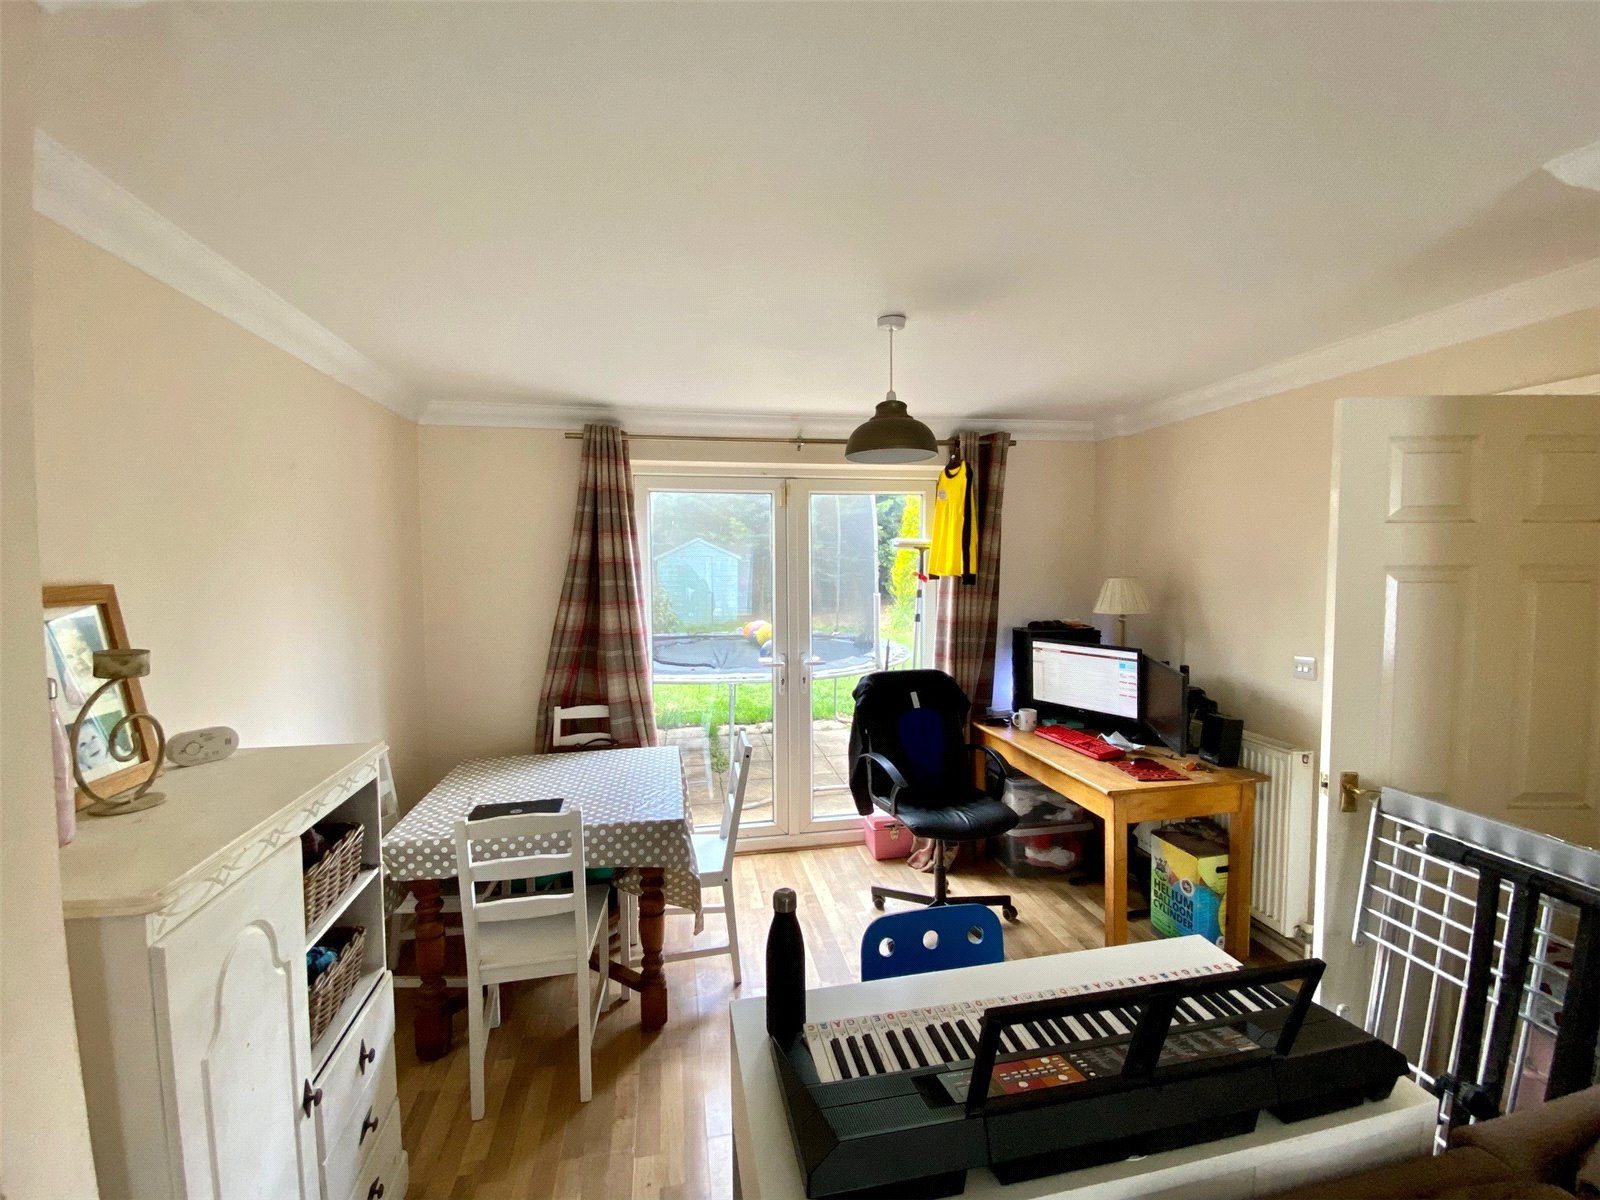 3 bed house to rent in Bricket Wood, AL2 3NB 7